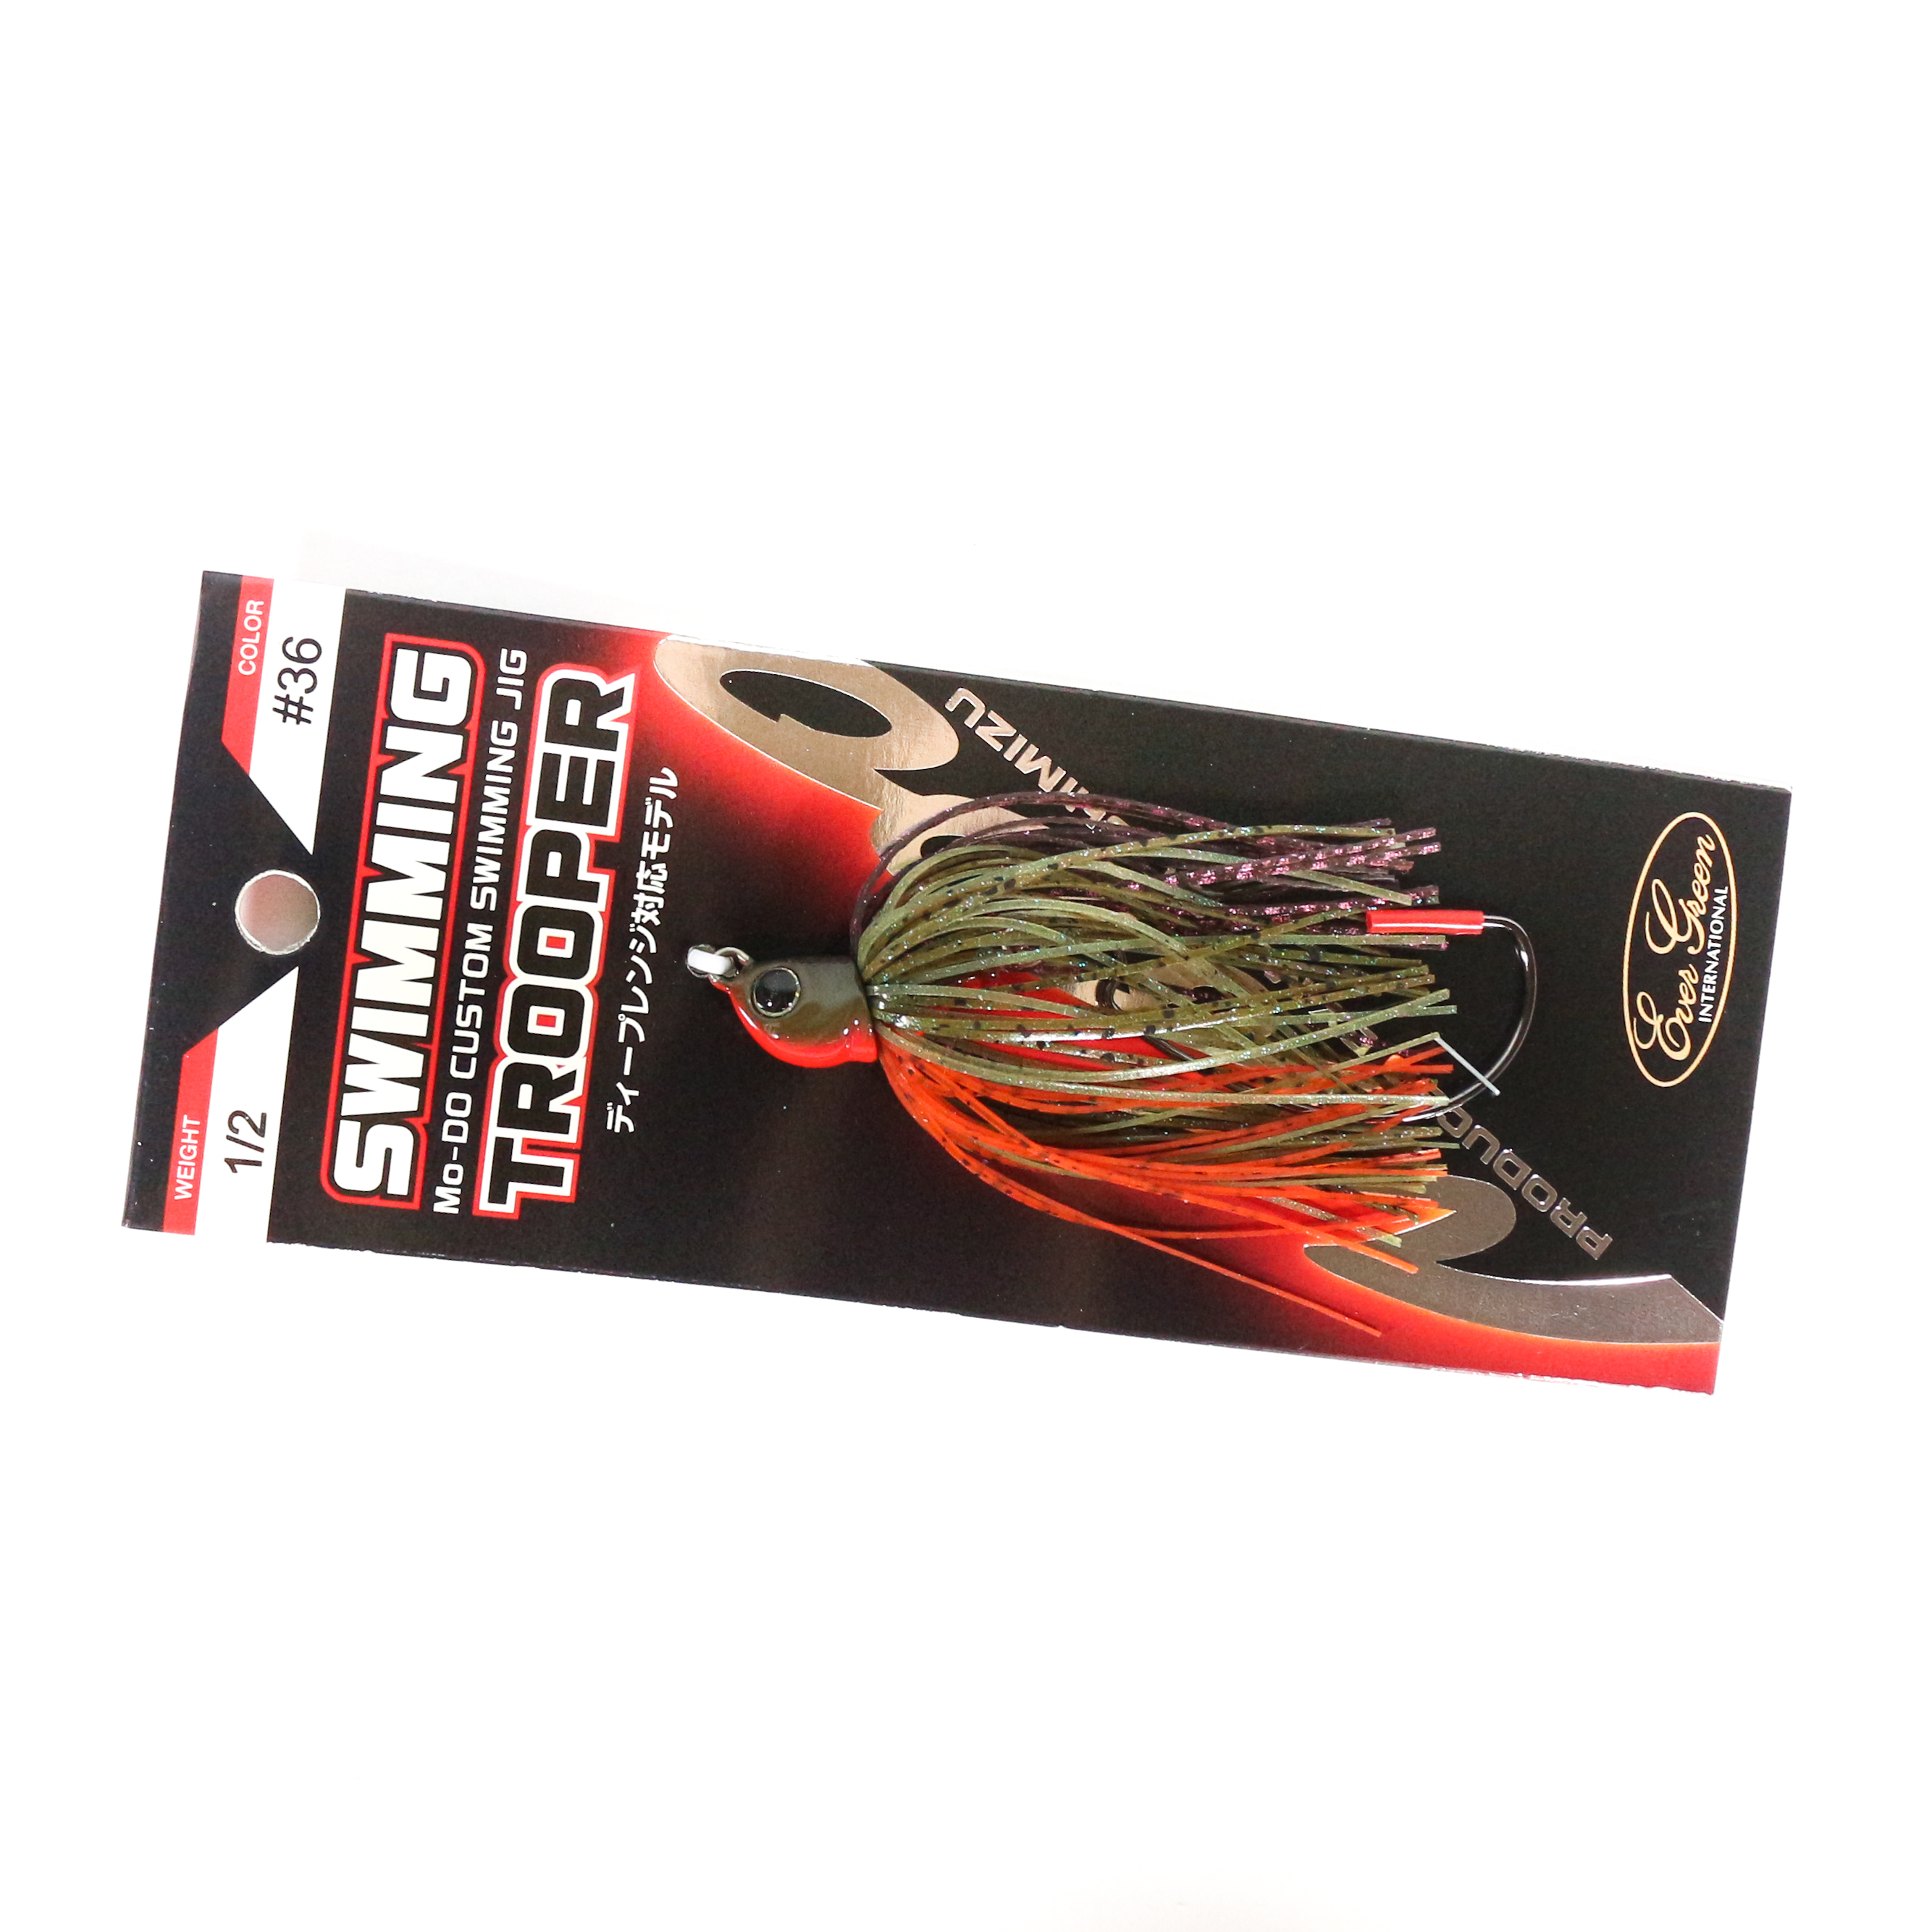 Evergreen Swimming Trooper Rubber Jig 1/2 oz Sinking Lure 36 (0188)